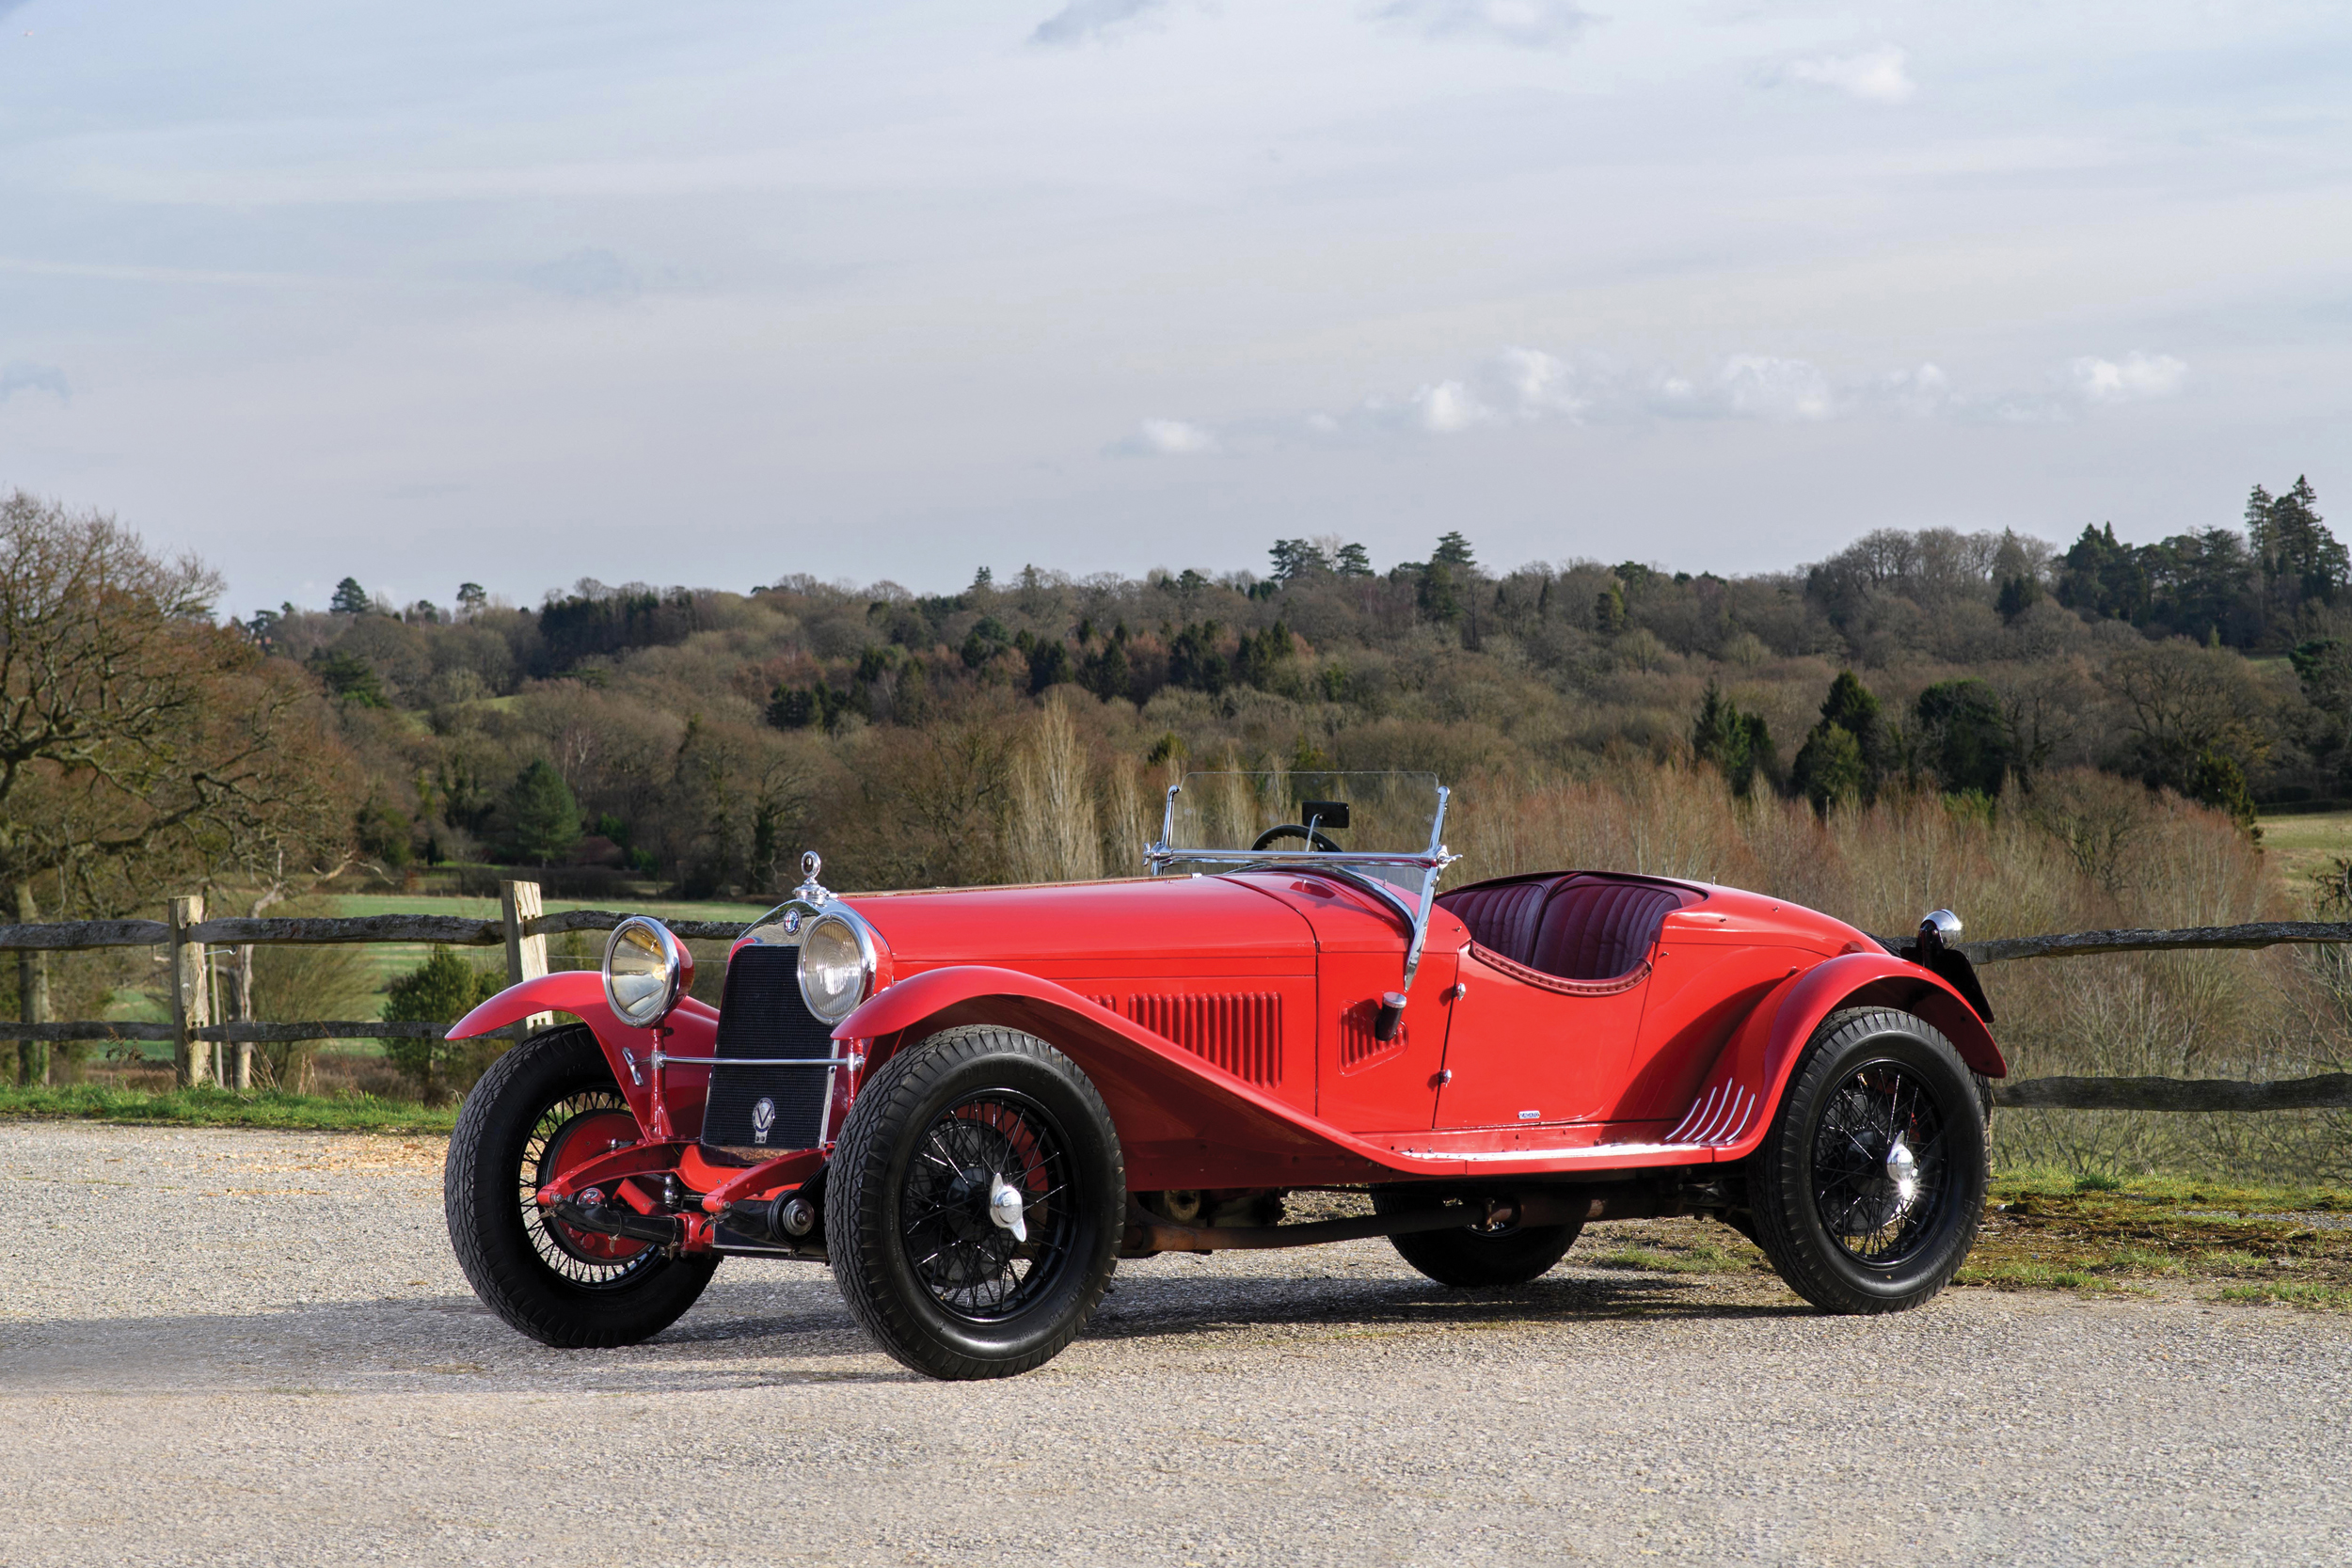 1930 Alfa Romeo 6C 1750 Gran Turismo Series IV Spider Tim Scott ©2020 Courtesy of RM Sotheby's